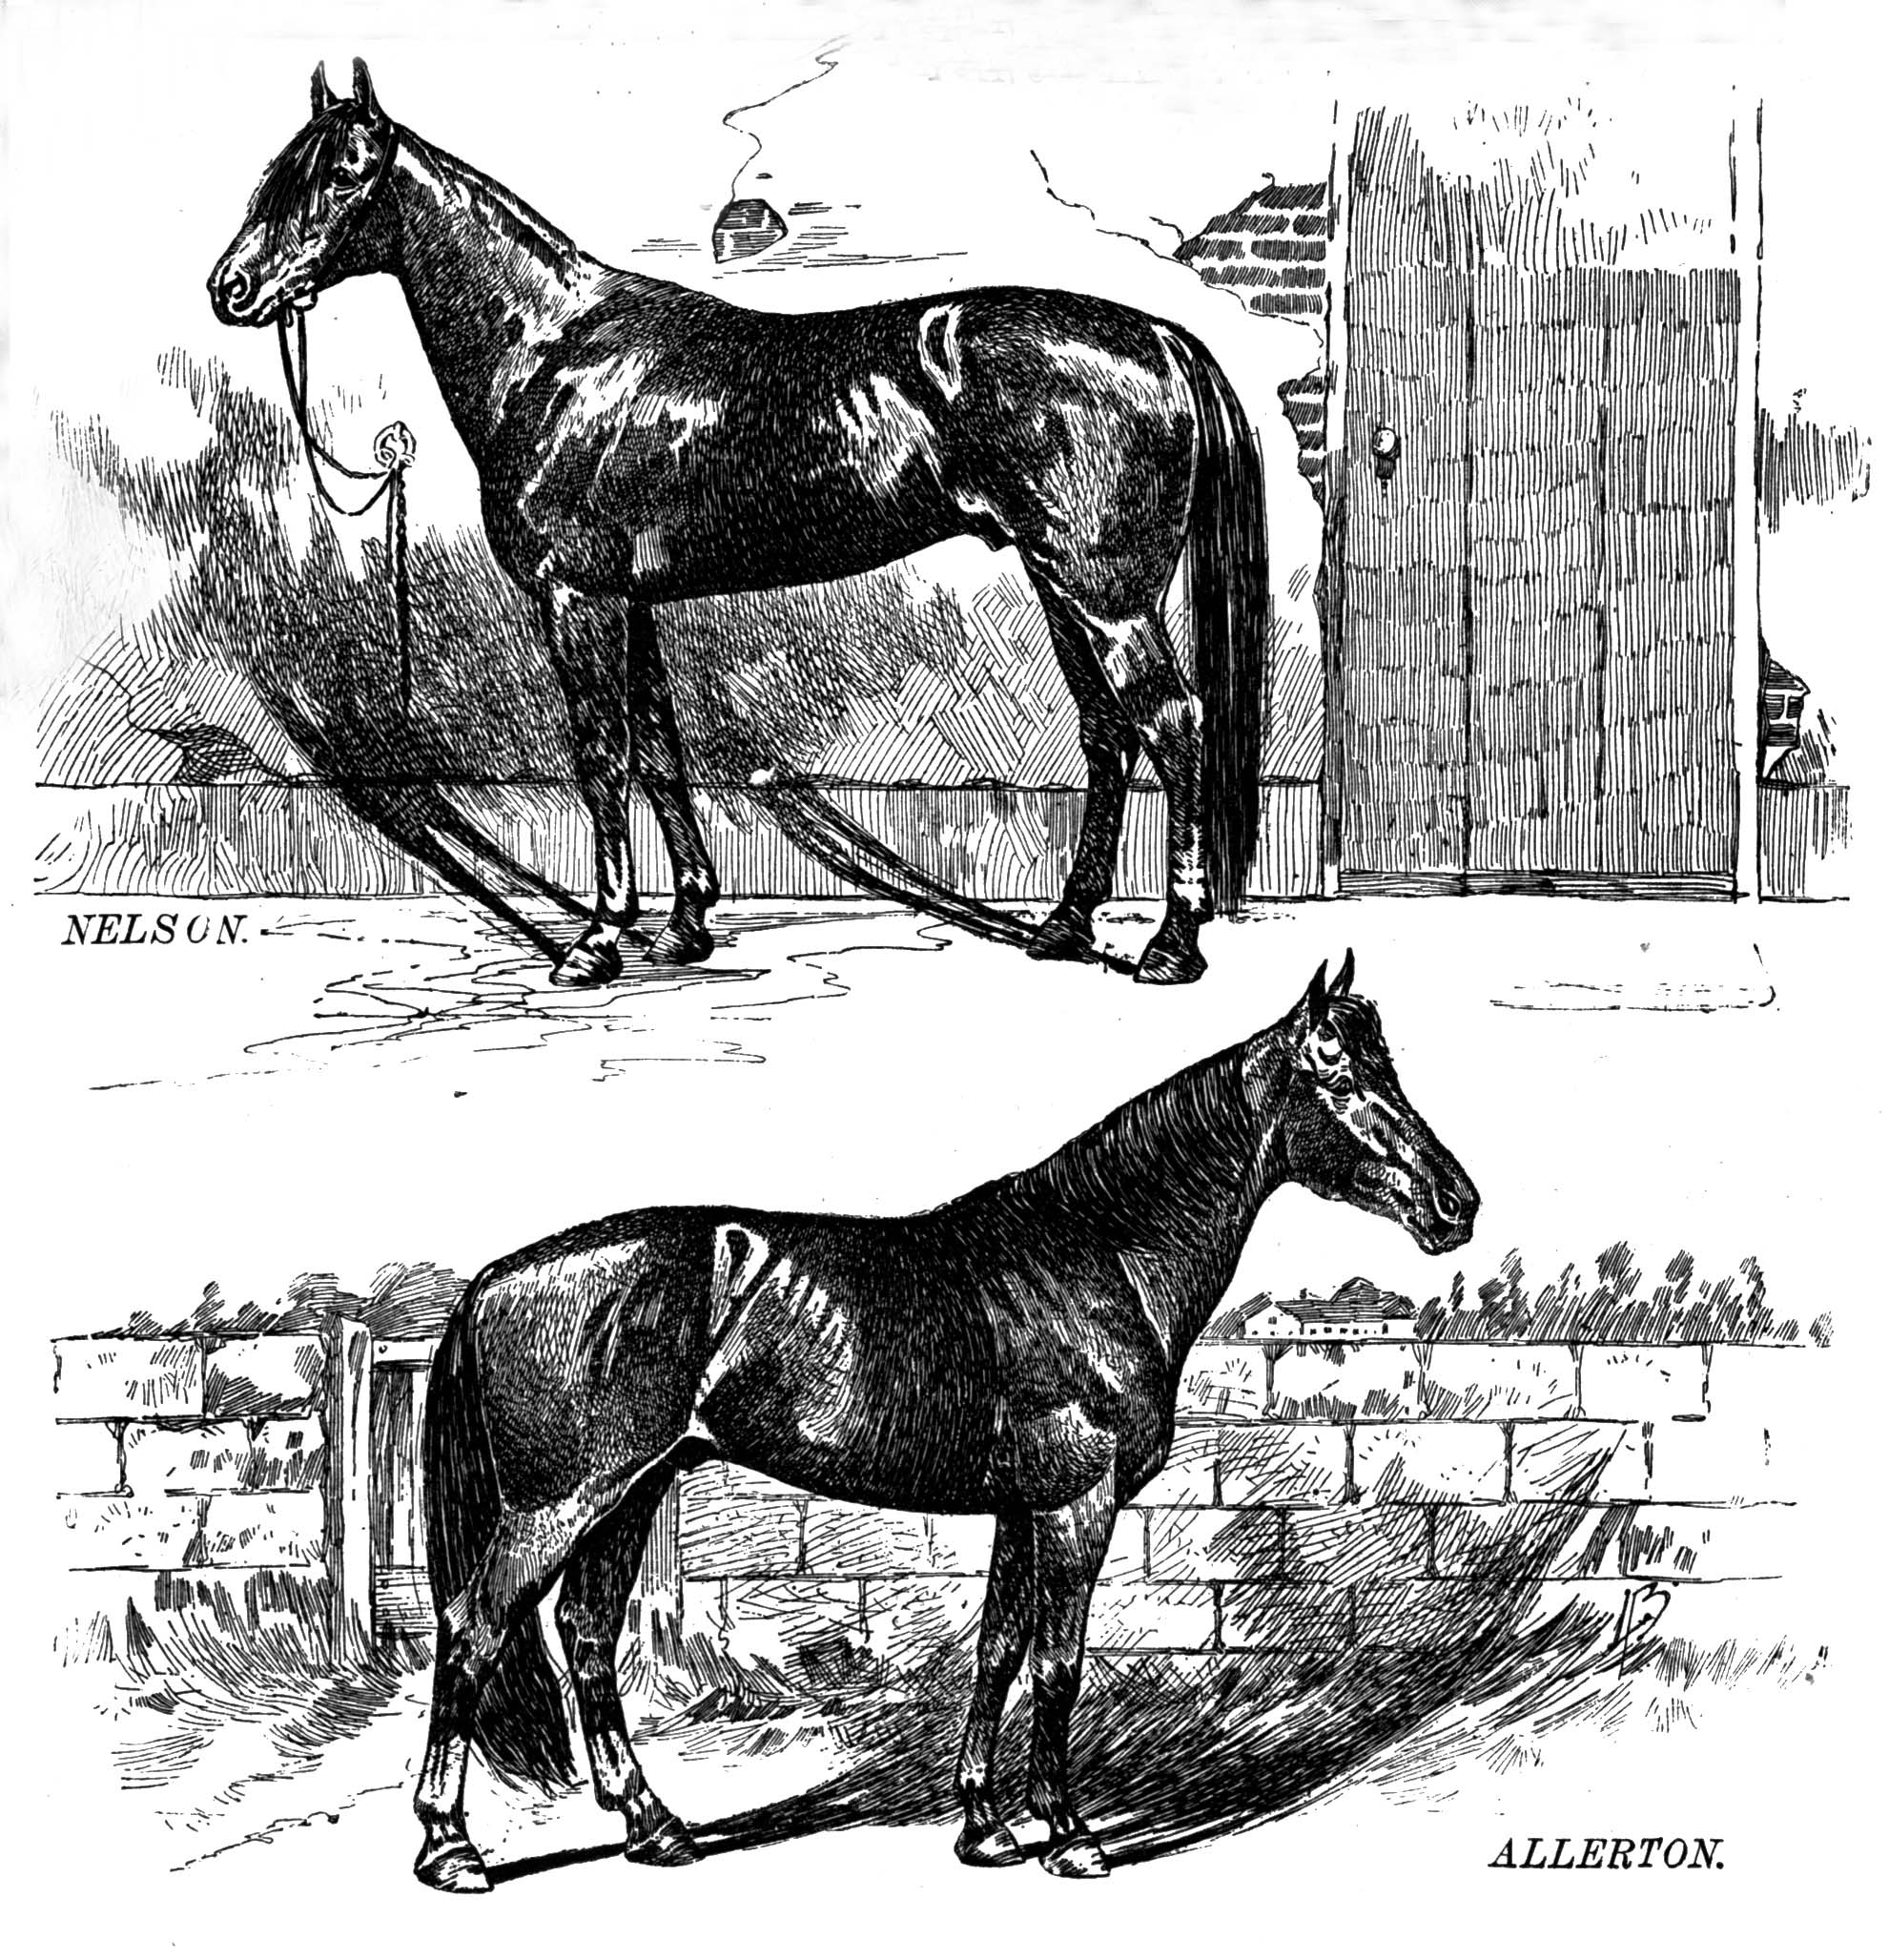 The Star Standardbreds of the 1890's Including Nelson 4209